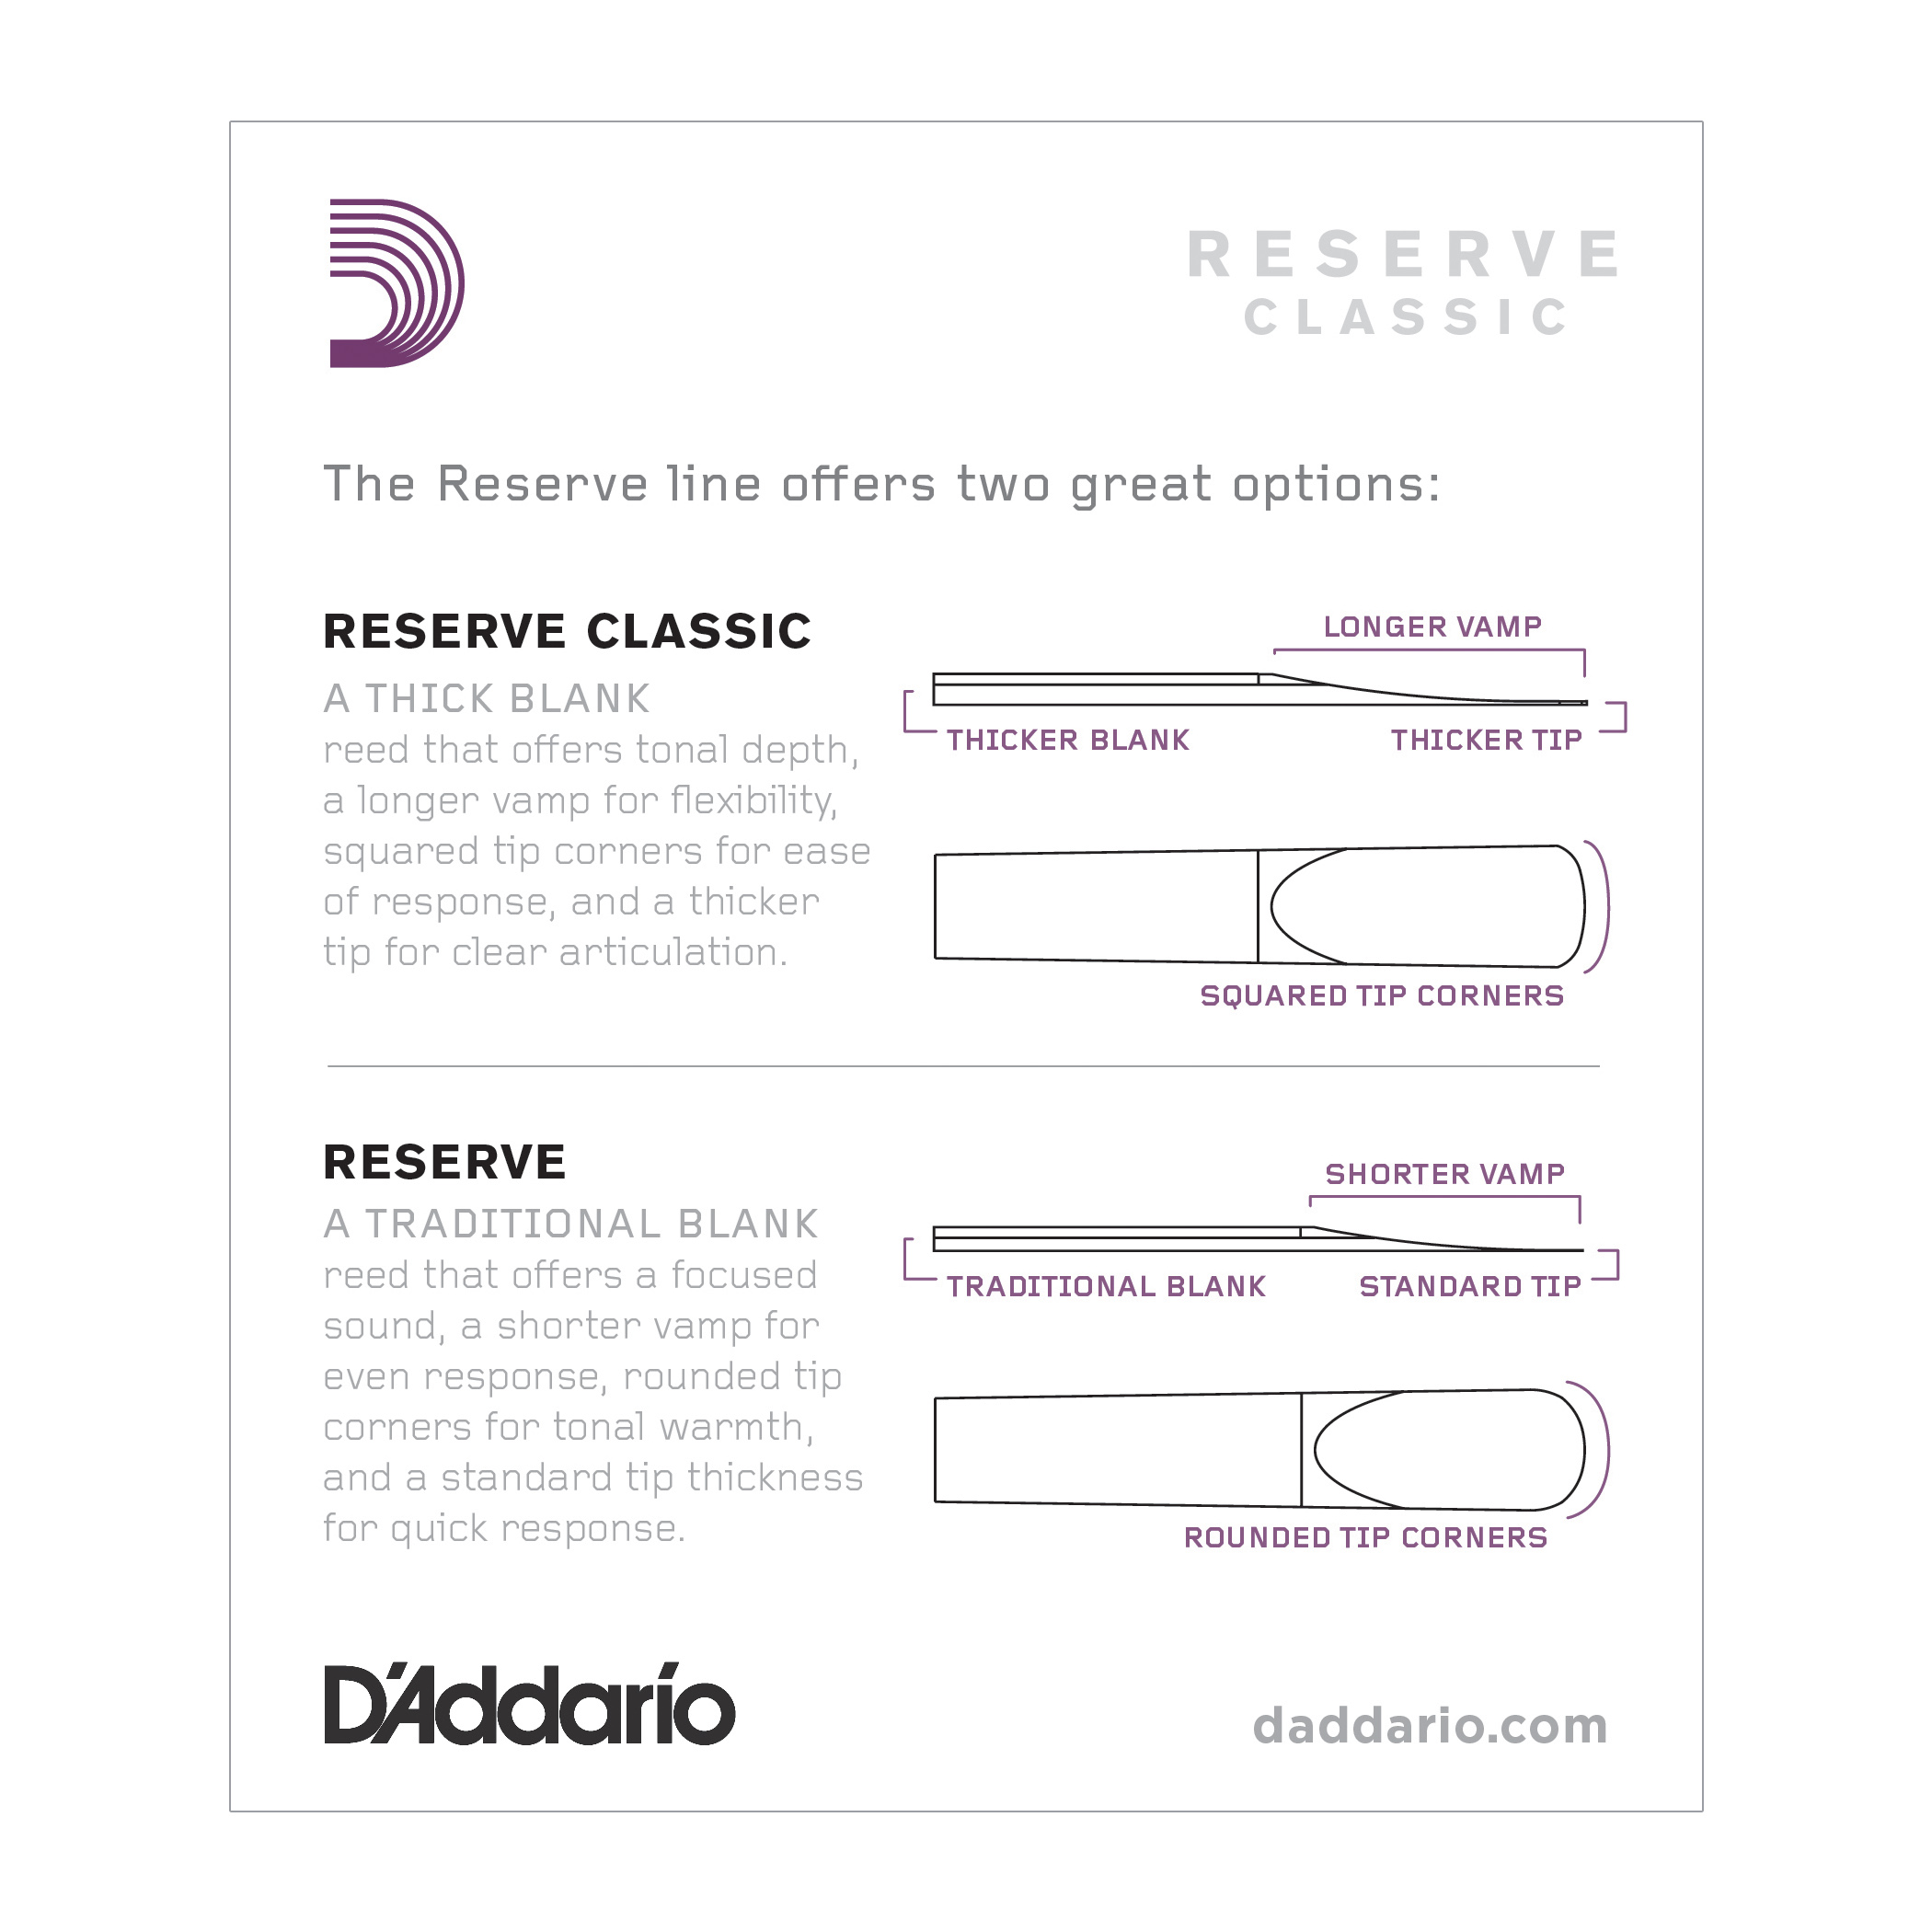 D'Addario Reserve Classic Bb Clarinet Reeds Strength 3.5+ 10-pack